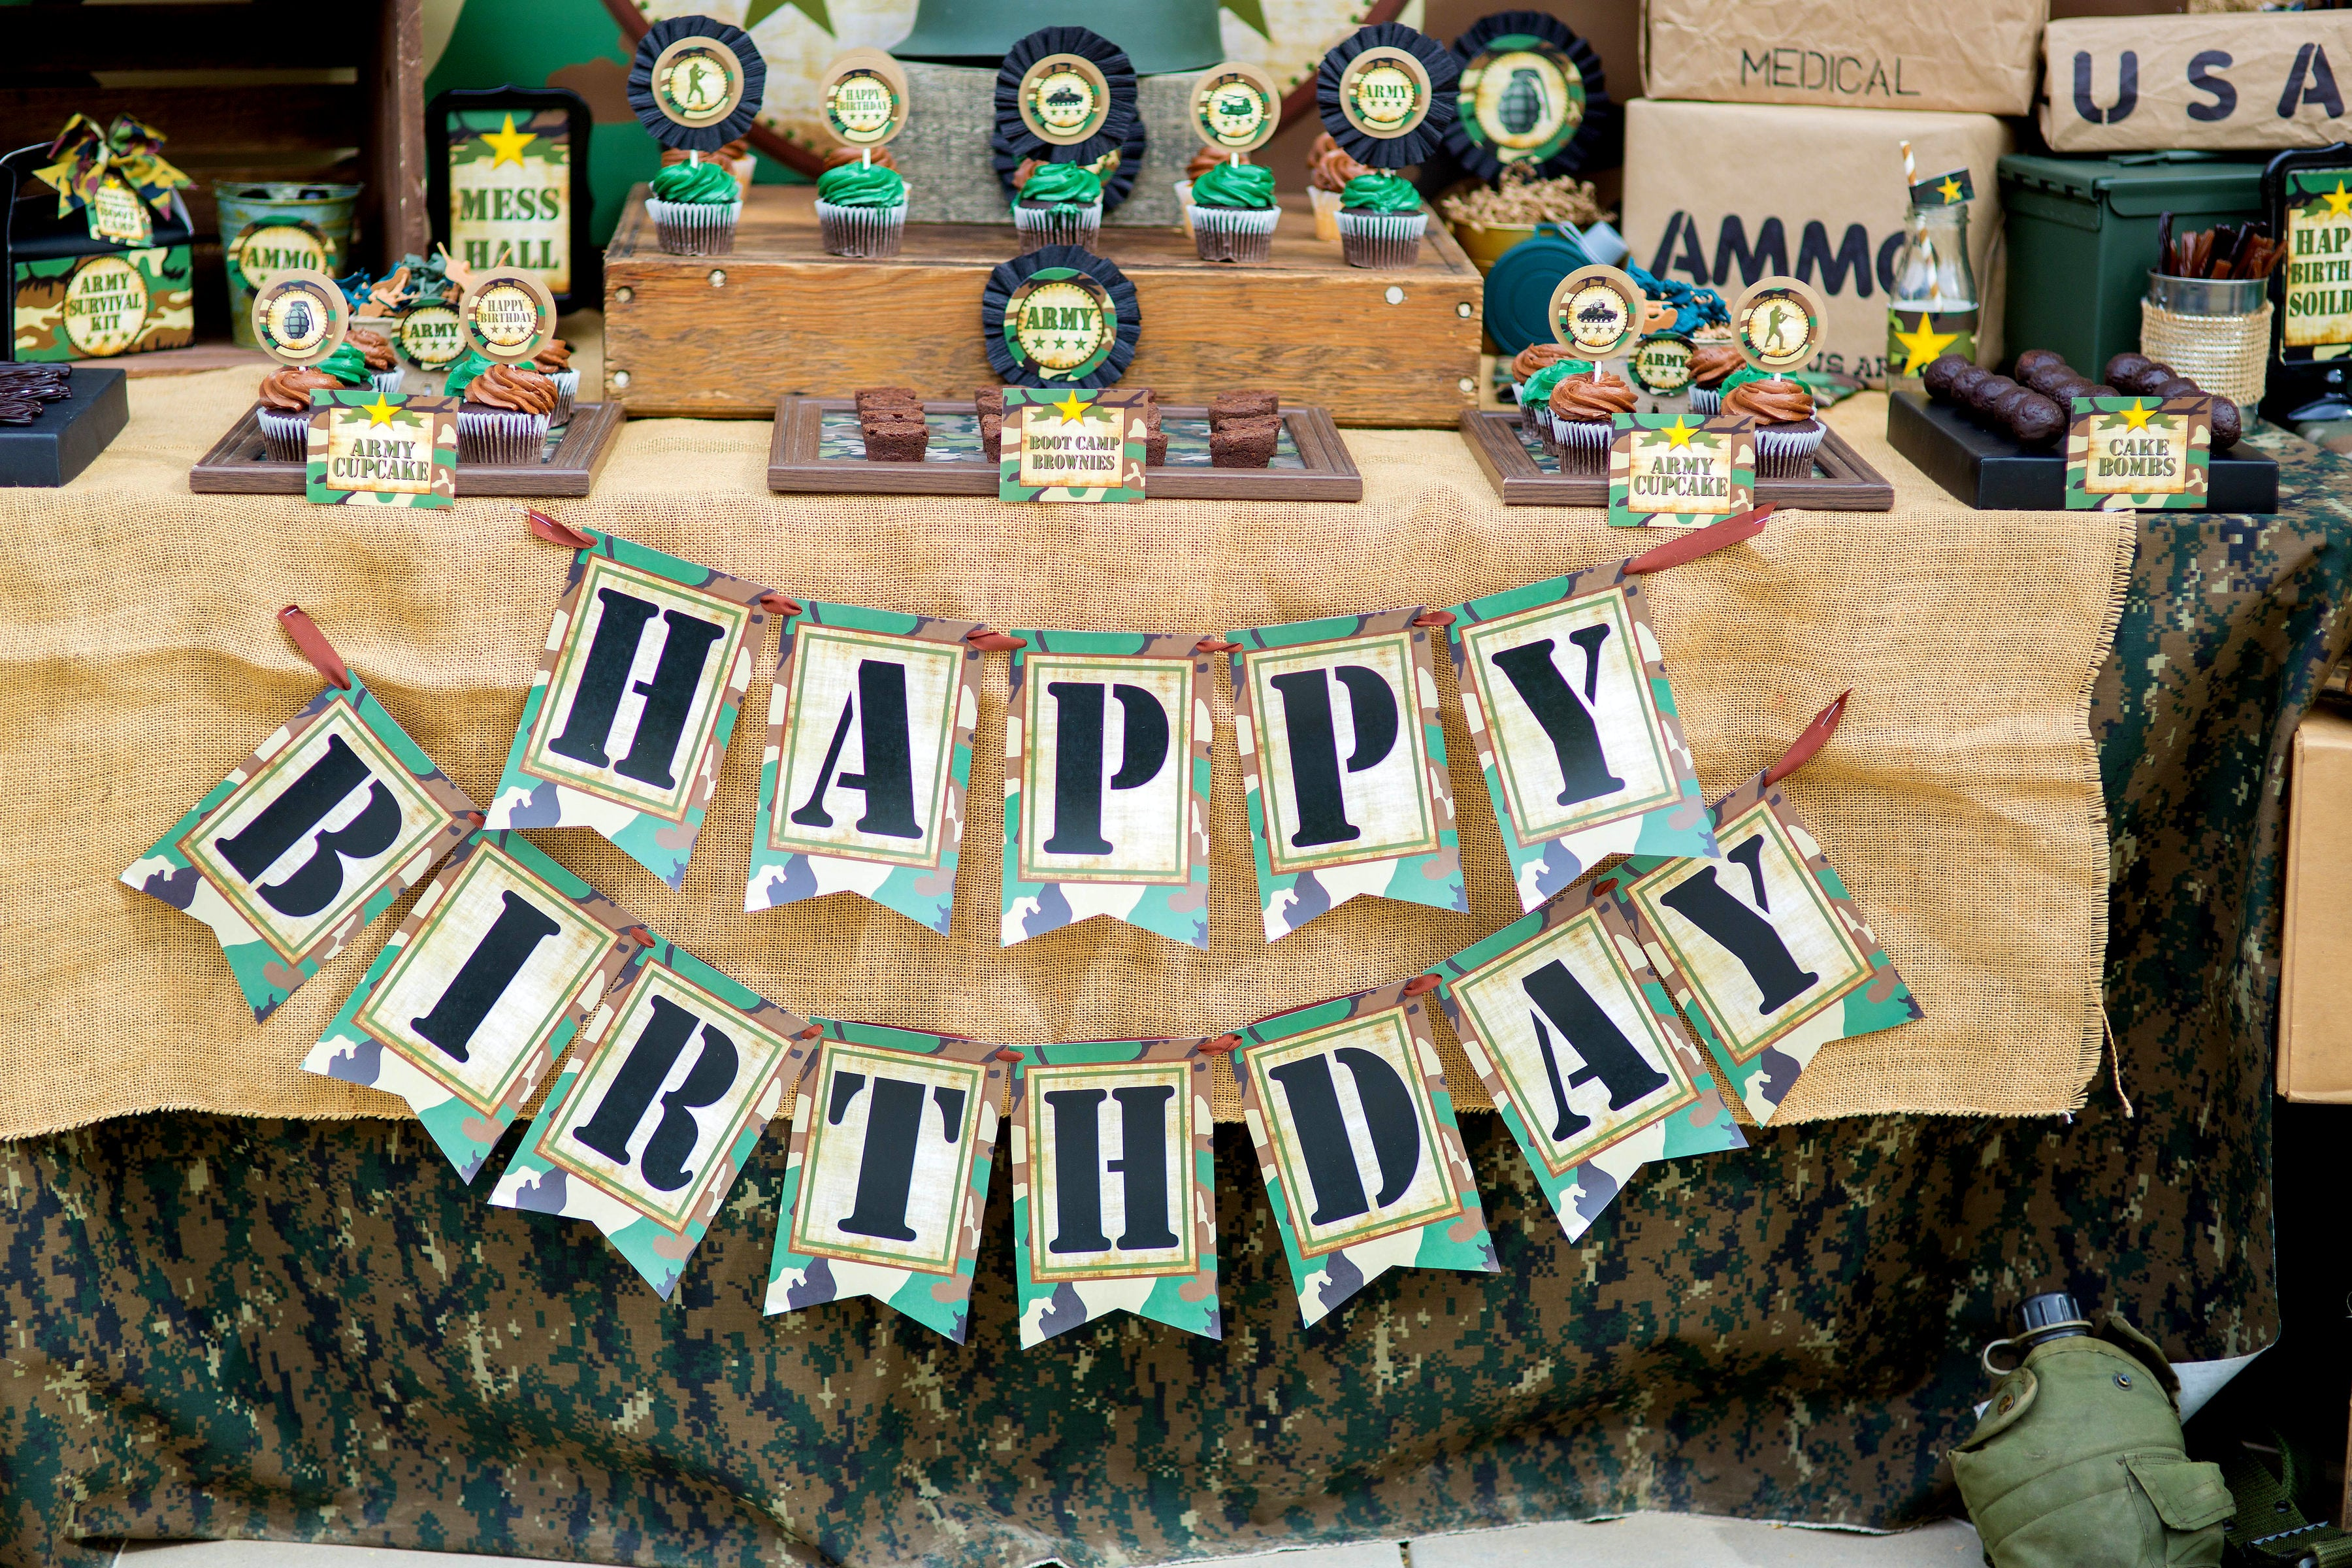 photograph regarding Camo Printable Paper identified as Navy Social gathering - Camo Birthday - Army Get together - Contact of Accountability - Armed forces Birthday - Navy BANNER - Camo Printables - Military services - Air Pressure - Nerf Celebration - Boy